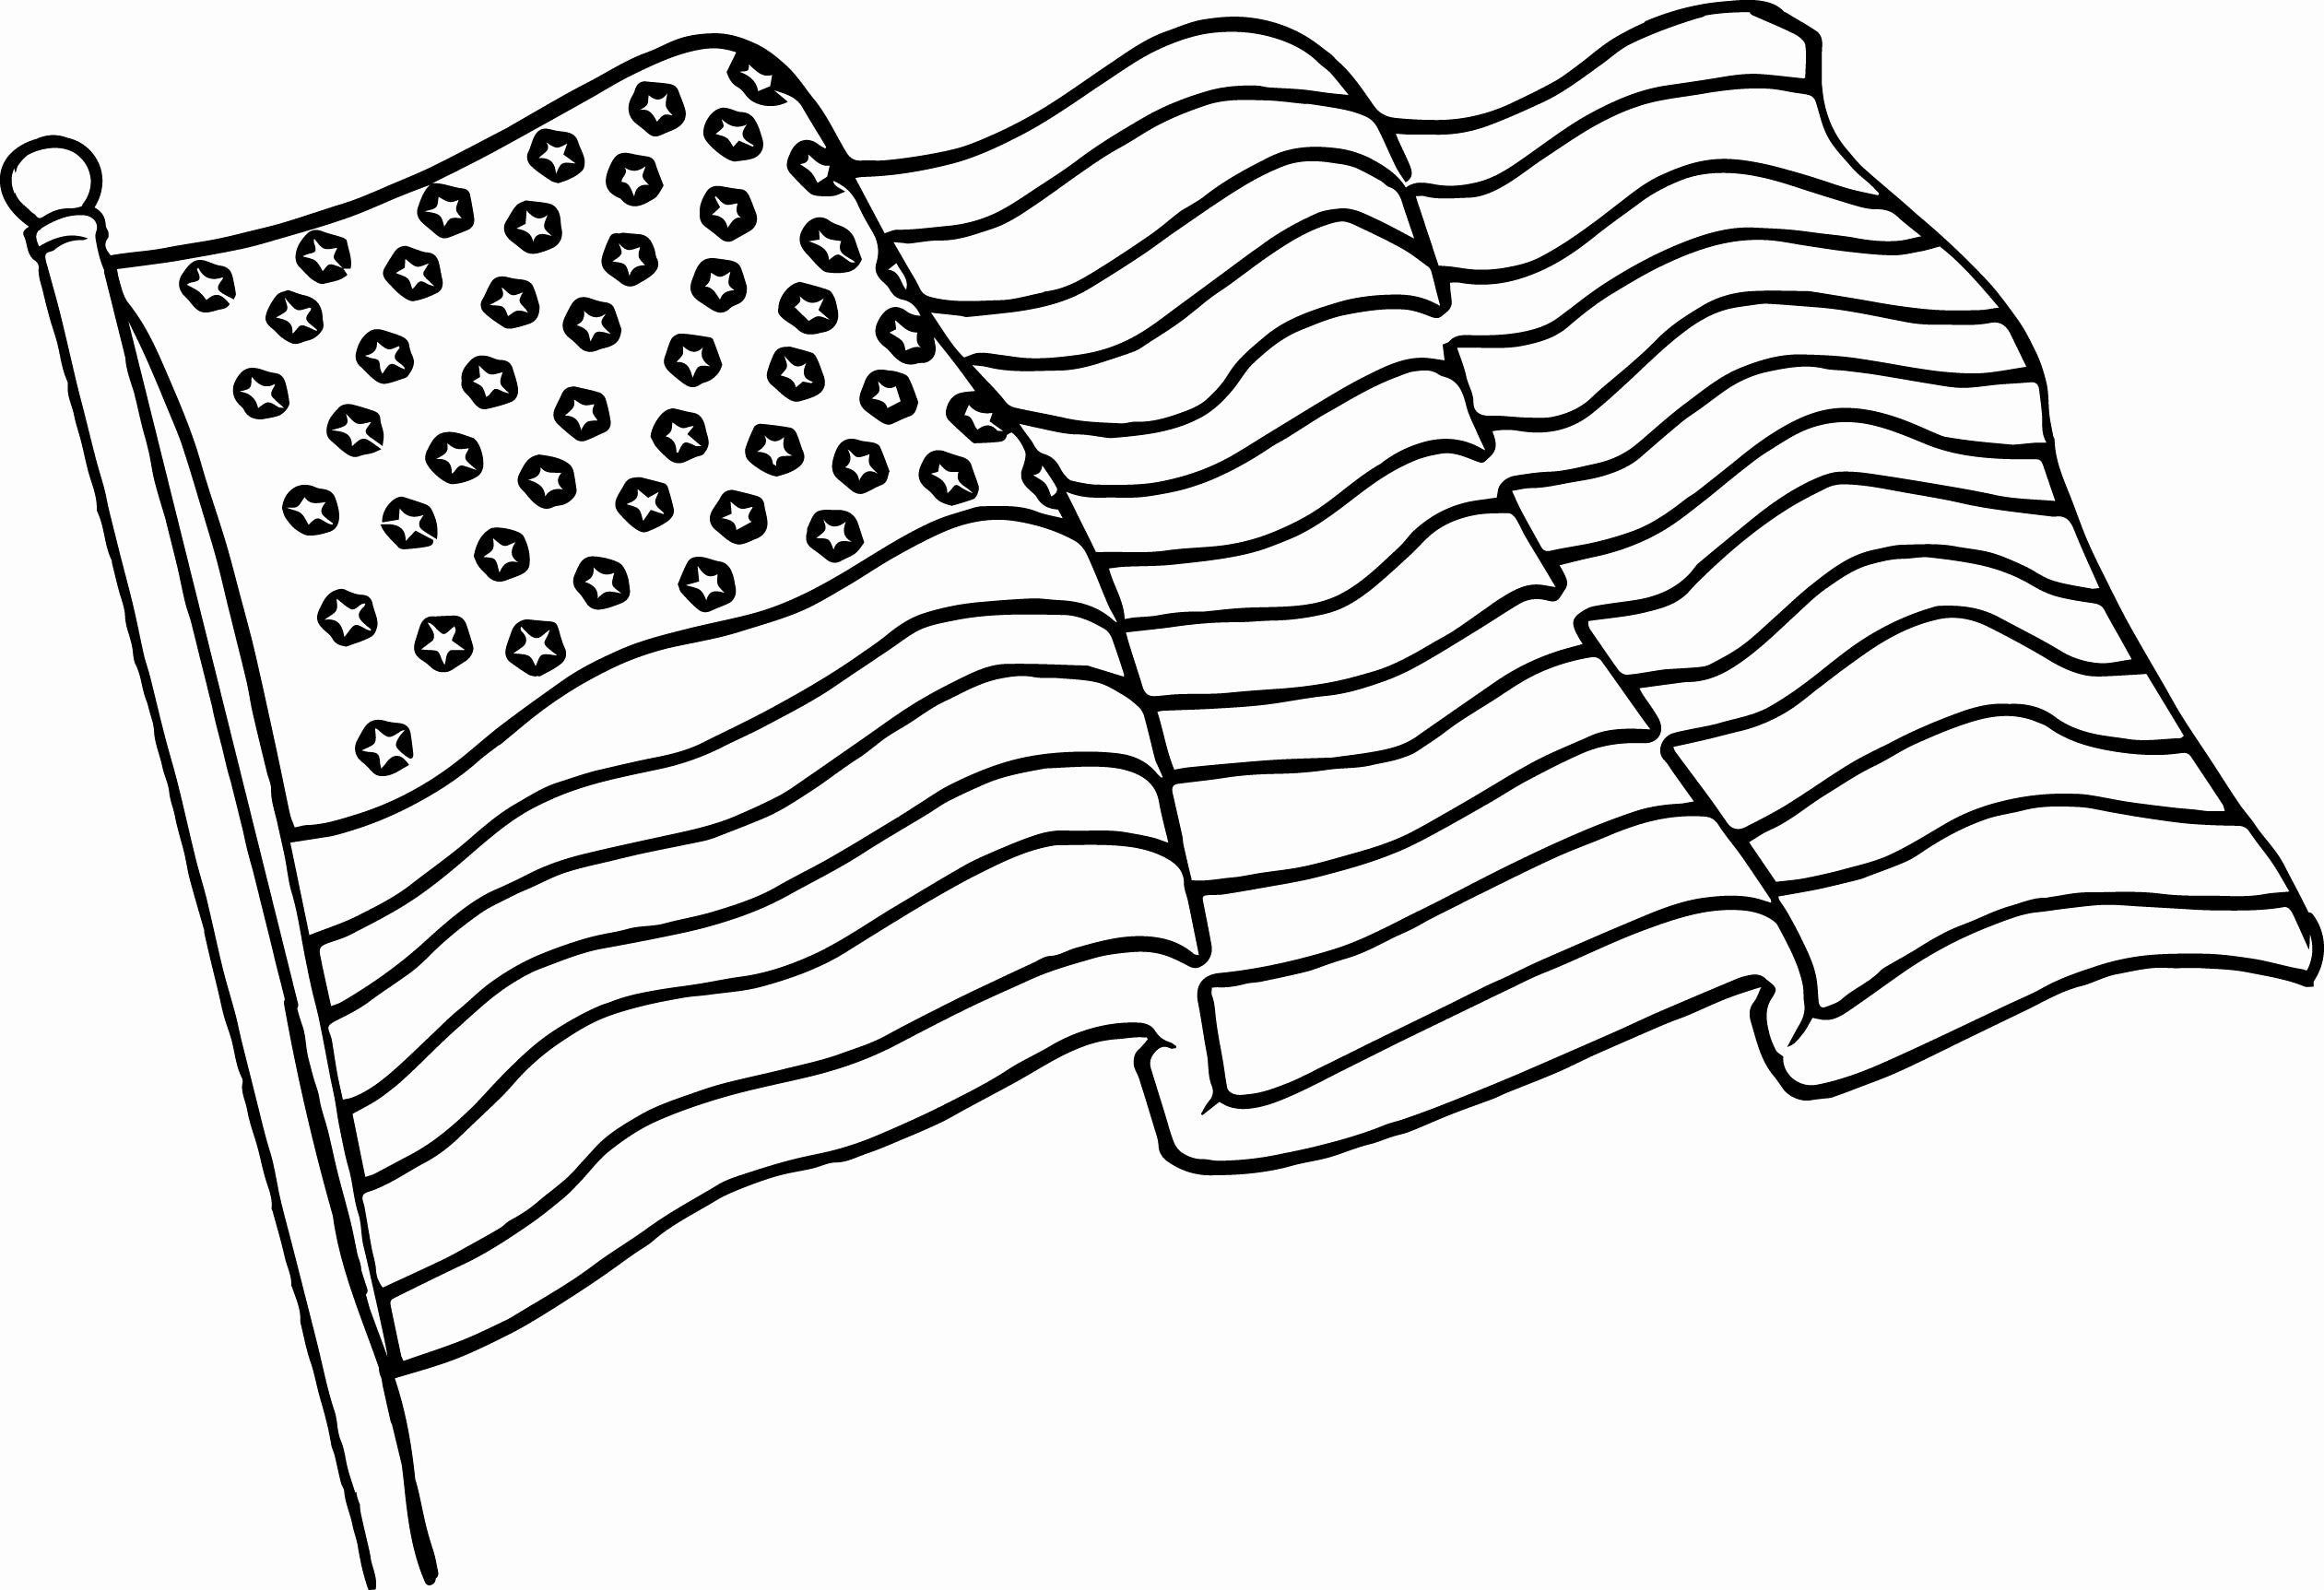 American Flag Coloring Sheet In 2020 Flag Coloring Pages